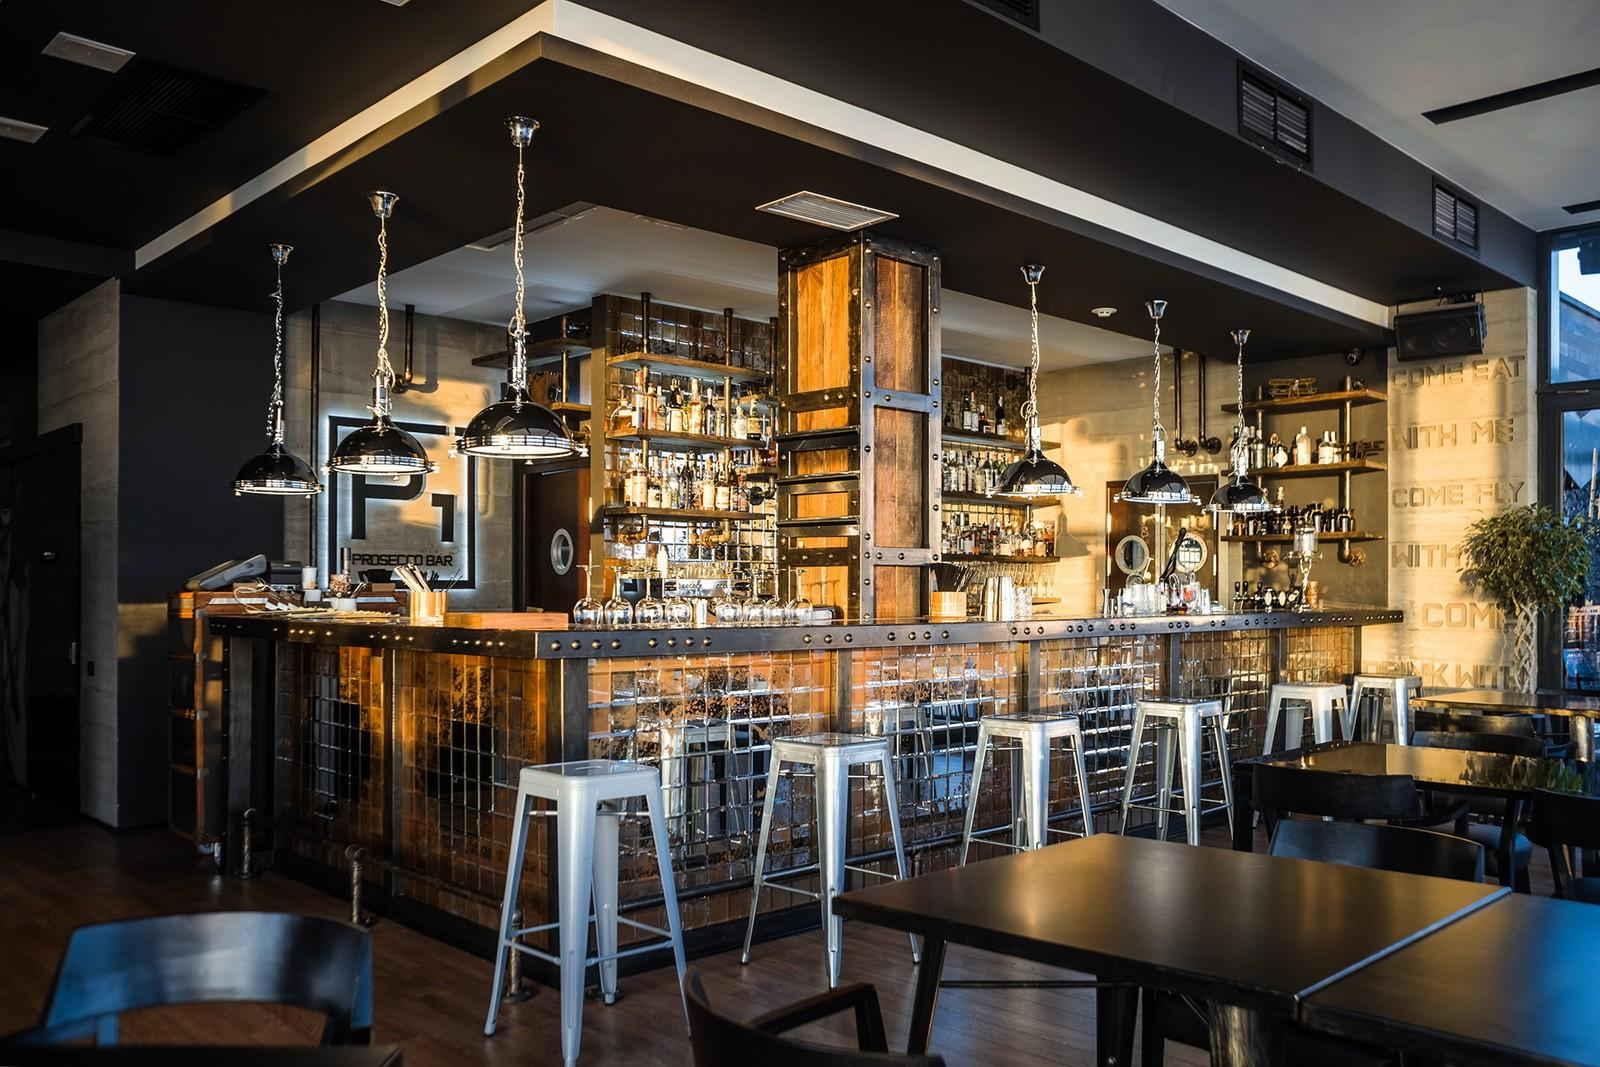 OUYEE small cafe design ideas at discount for bar-1